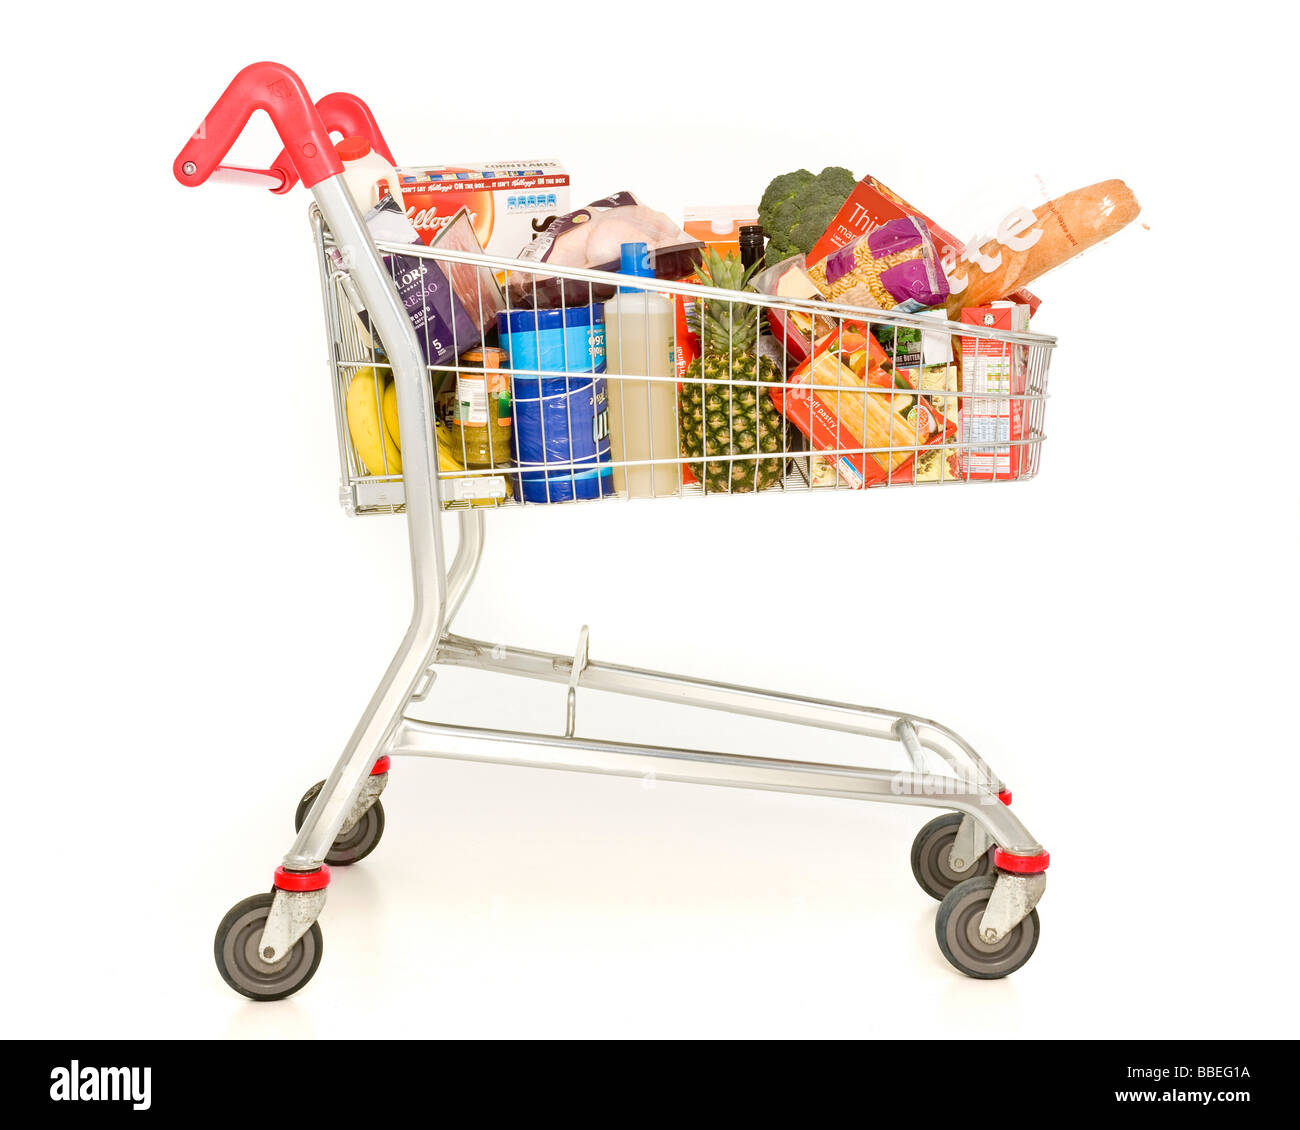 Supermarket shopping trolley filled with weekly shopping on white background - Stock Image